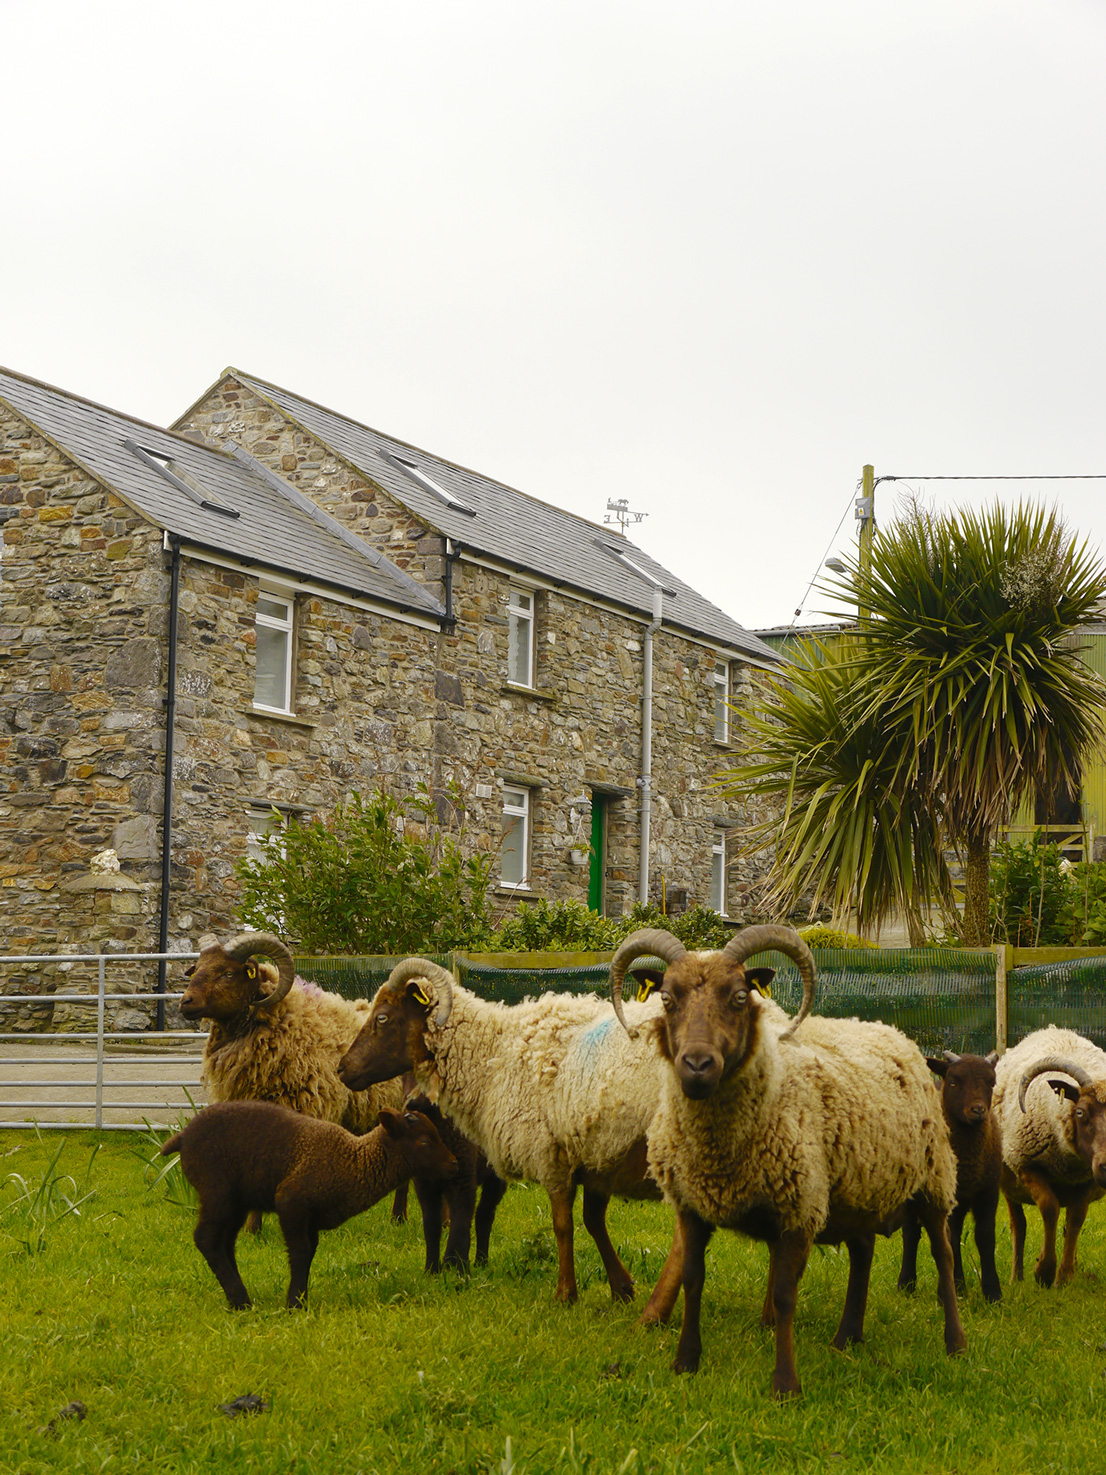 Manx Loaghtan outside The Stable